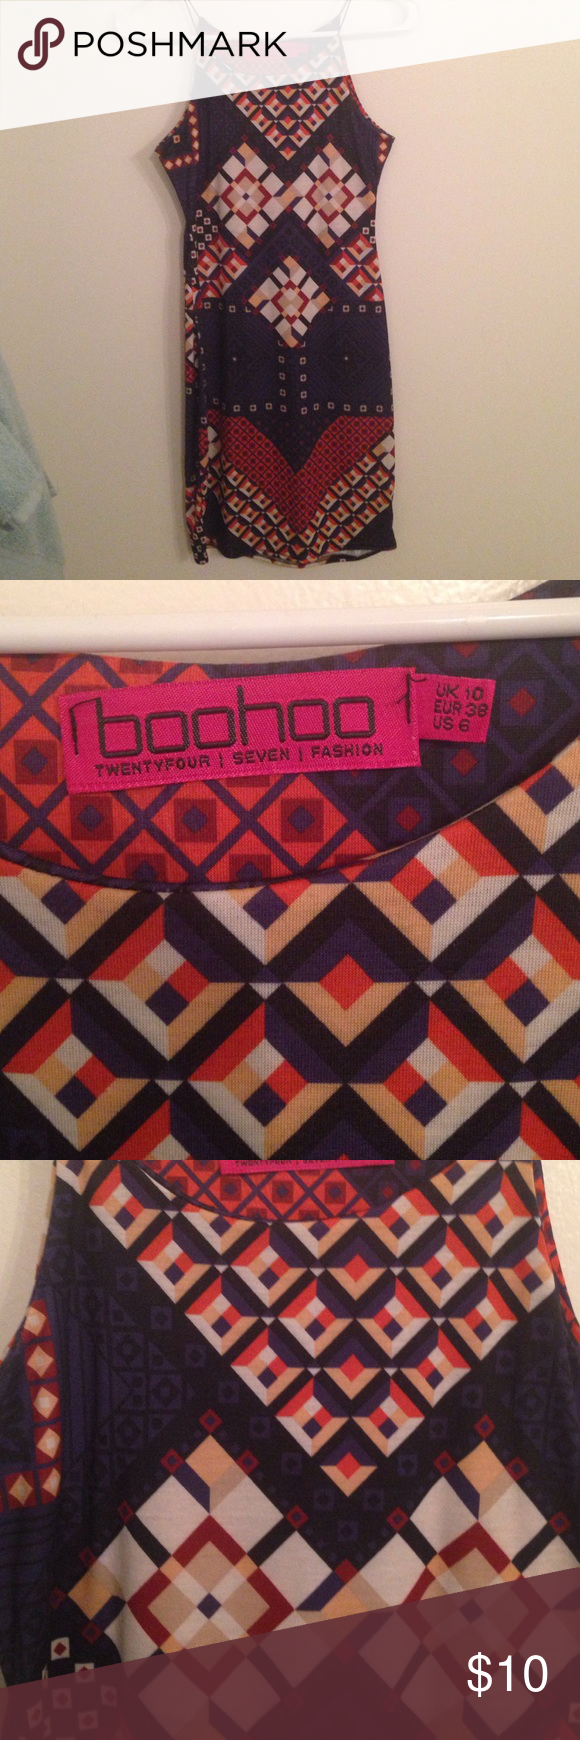 Boohoo Bodycon Dress Size 6 Boohoo Bodycon dress. Took off the tag, but has never been worn. Boohoo Dresses Mini